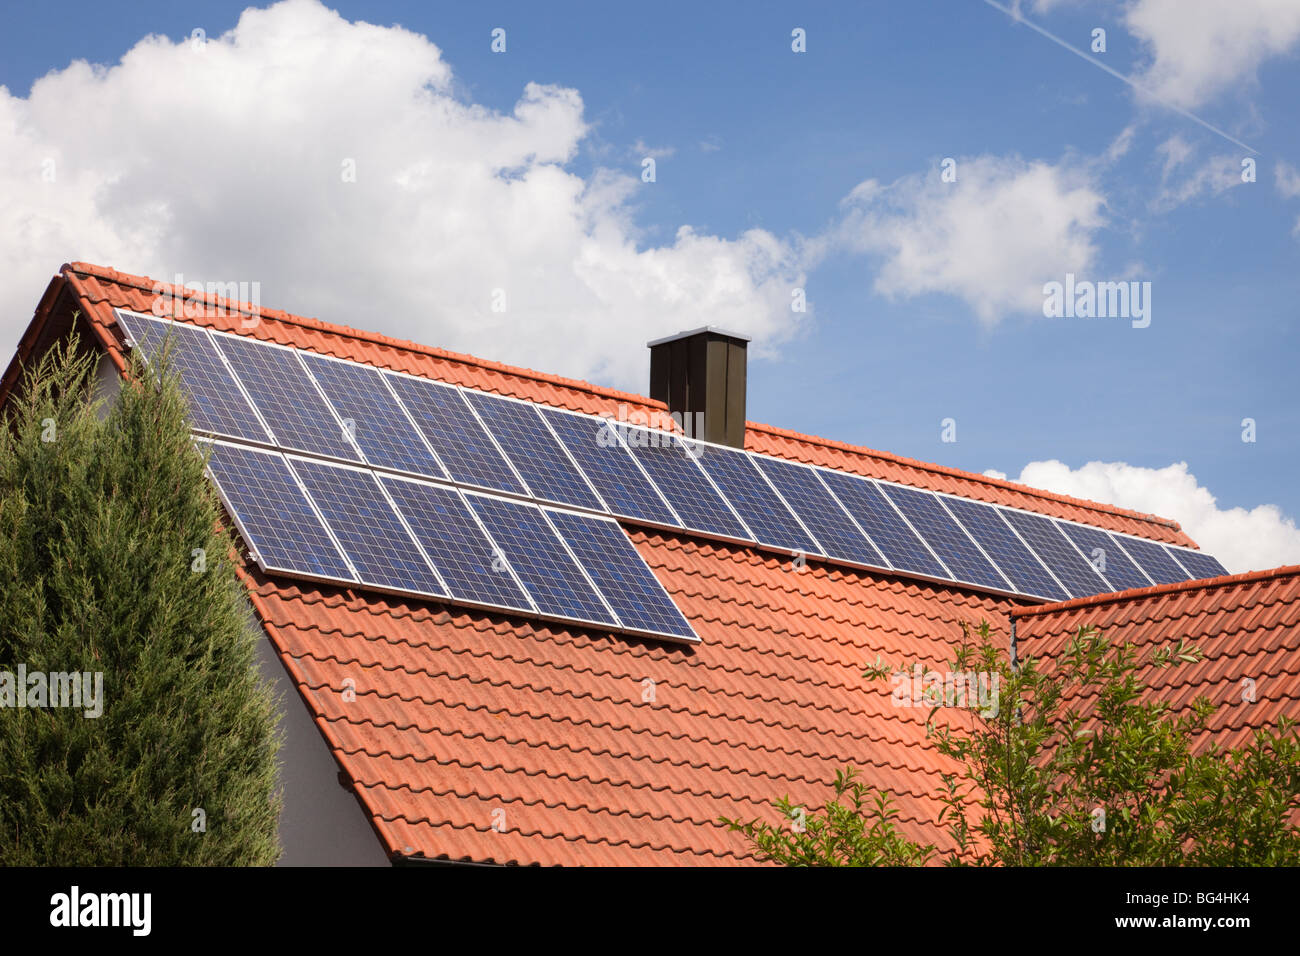 Photovoltaic solar panels on a house roof on a sunny day. Bavaria, Germany, Europe. - Stock Image